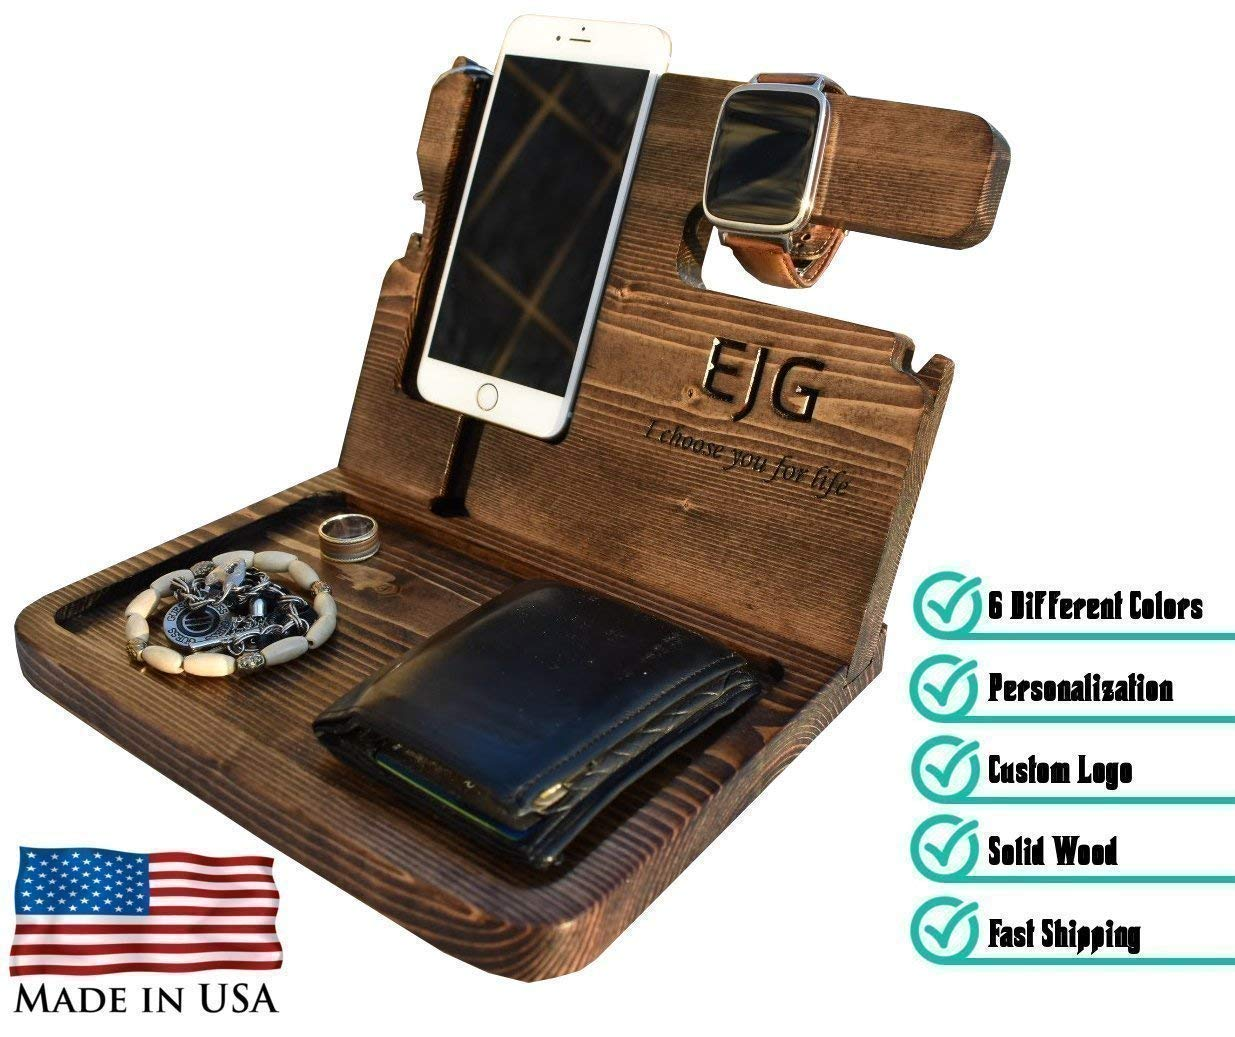 PurpleHammer Wooden Docking Station, Personalized desk organizer, Nightstand Docking Station, Unique holiday gift, Wood docking station, Birthday Gift, Gift for Men, Anniversary Gift, Fathers Day Gift